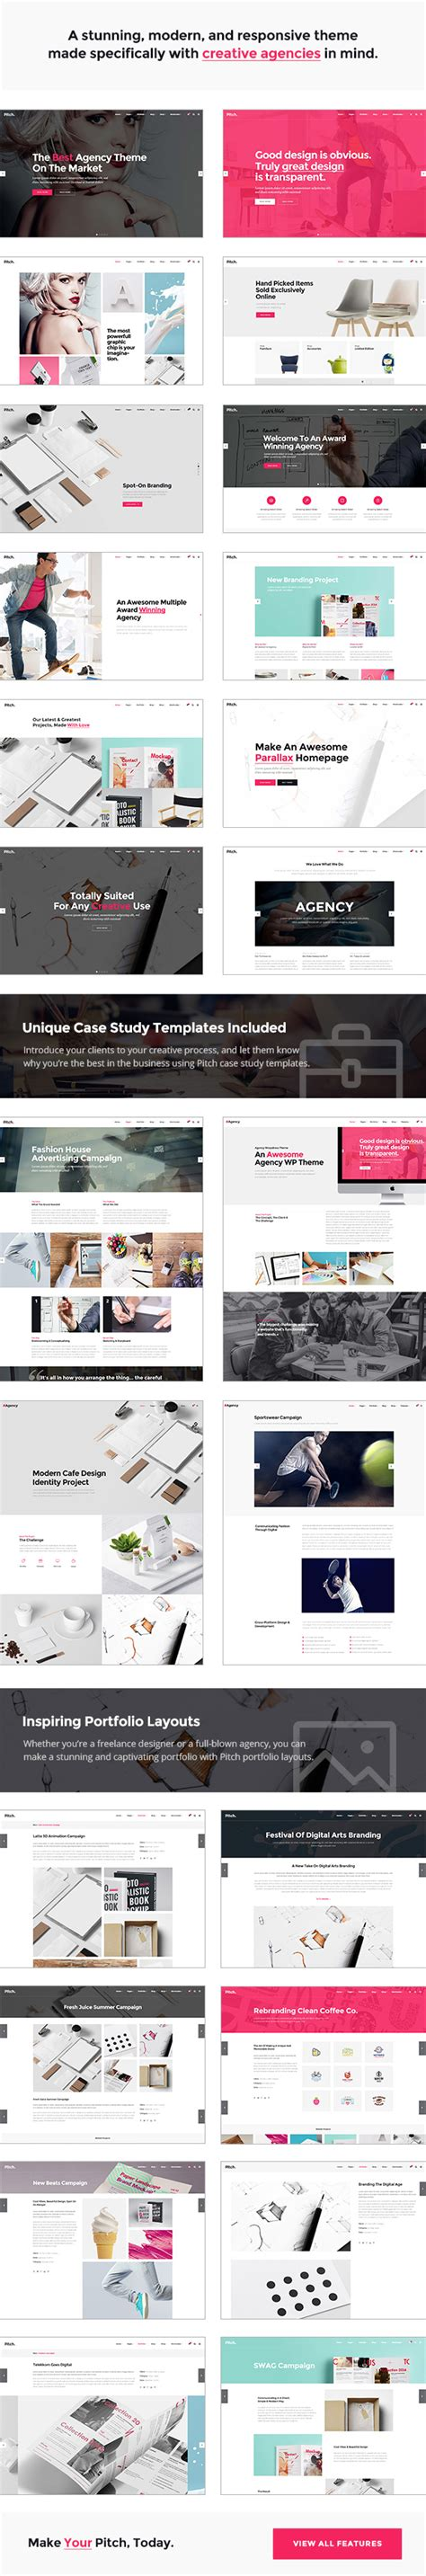 dta themes download center pitch a theme for freelancers and agencies portfolio